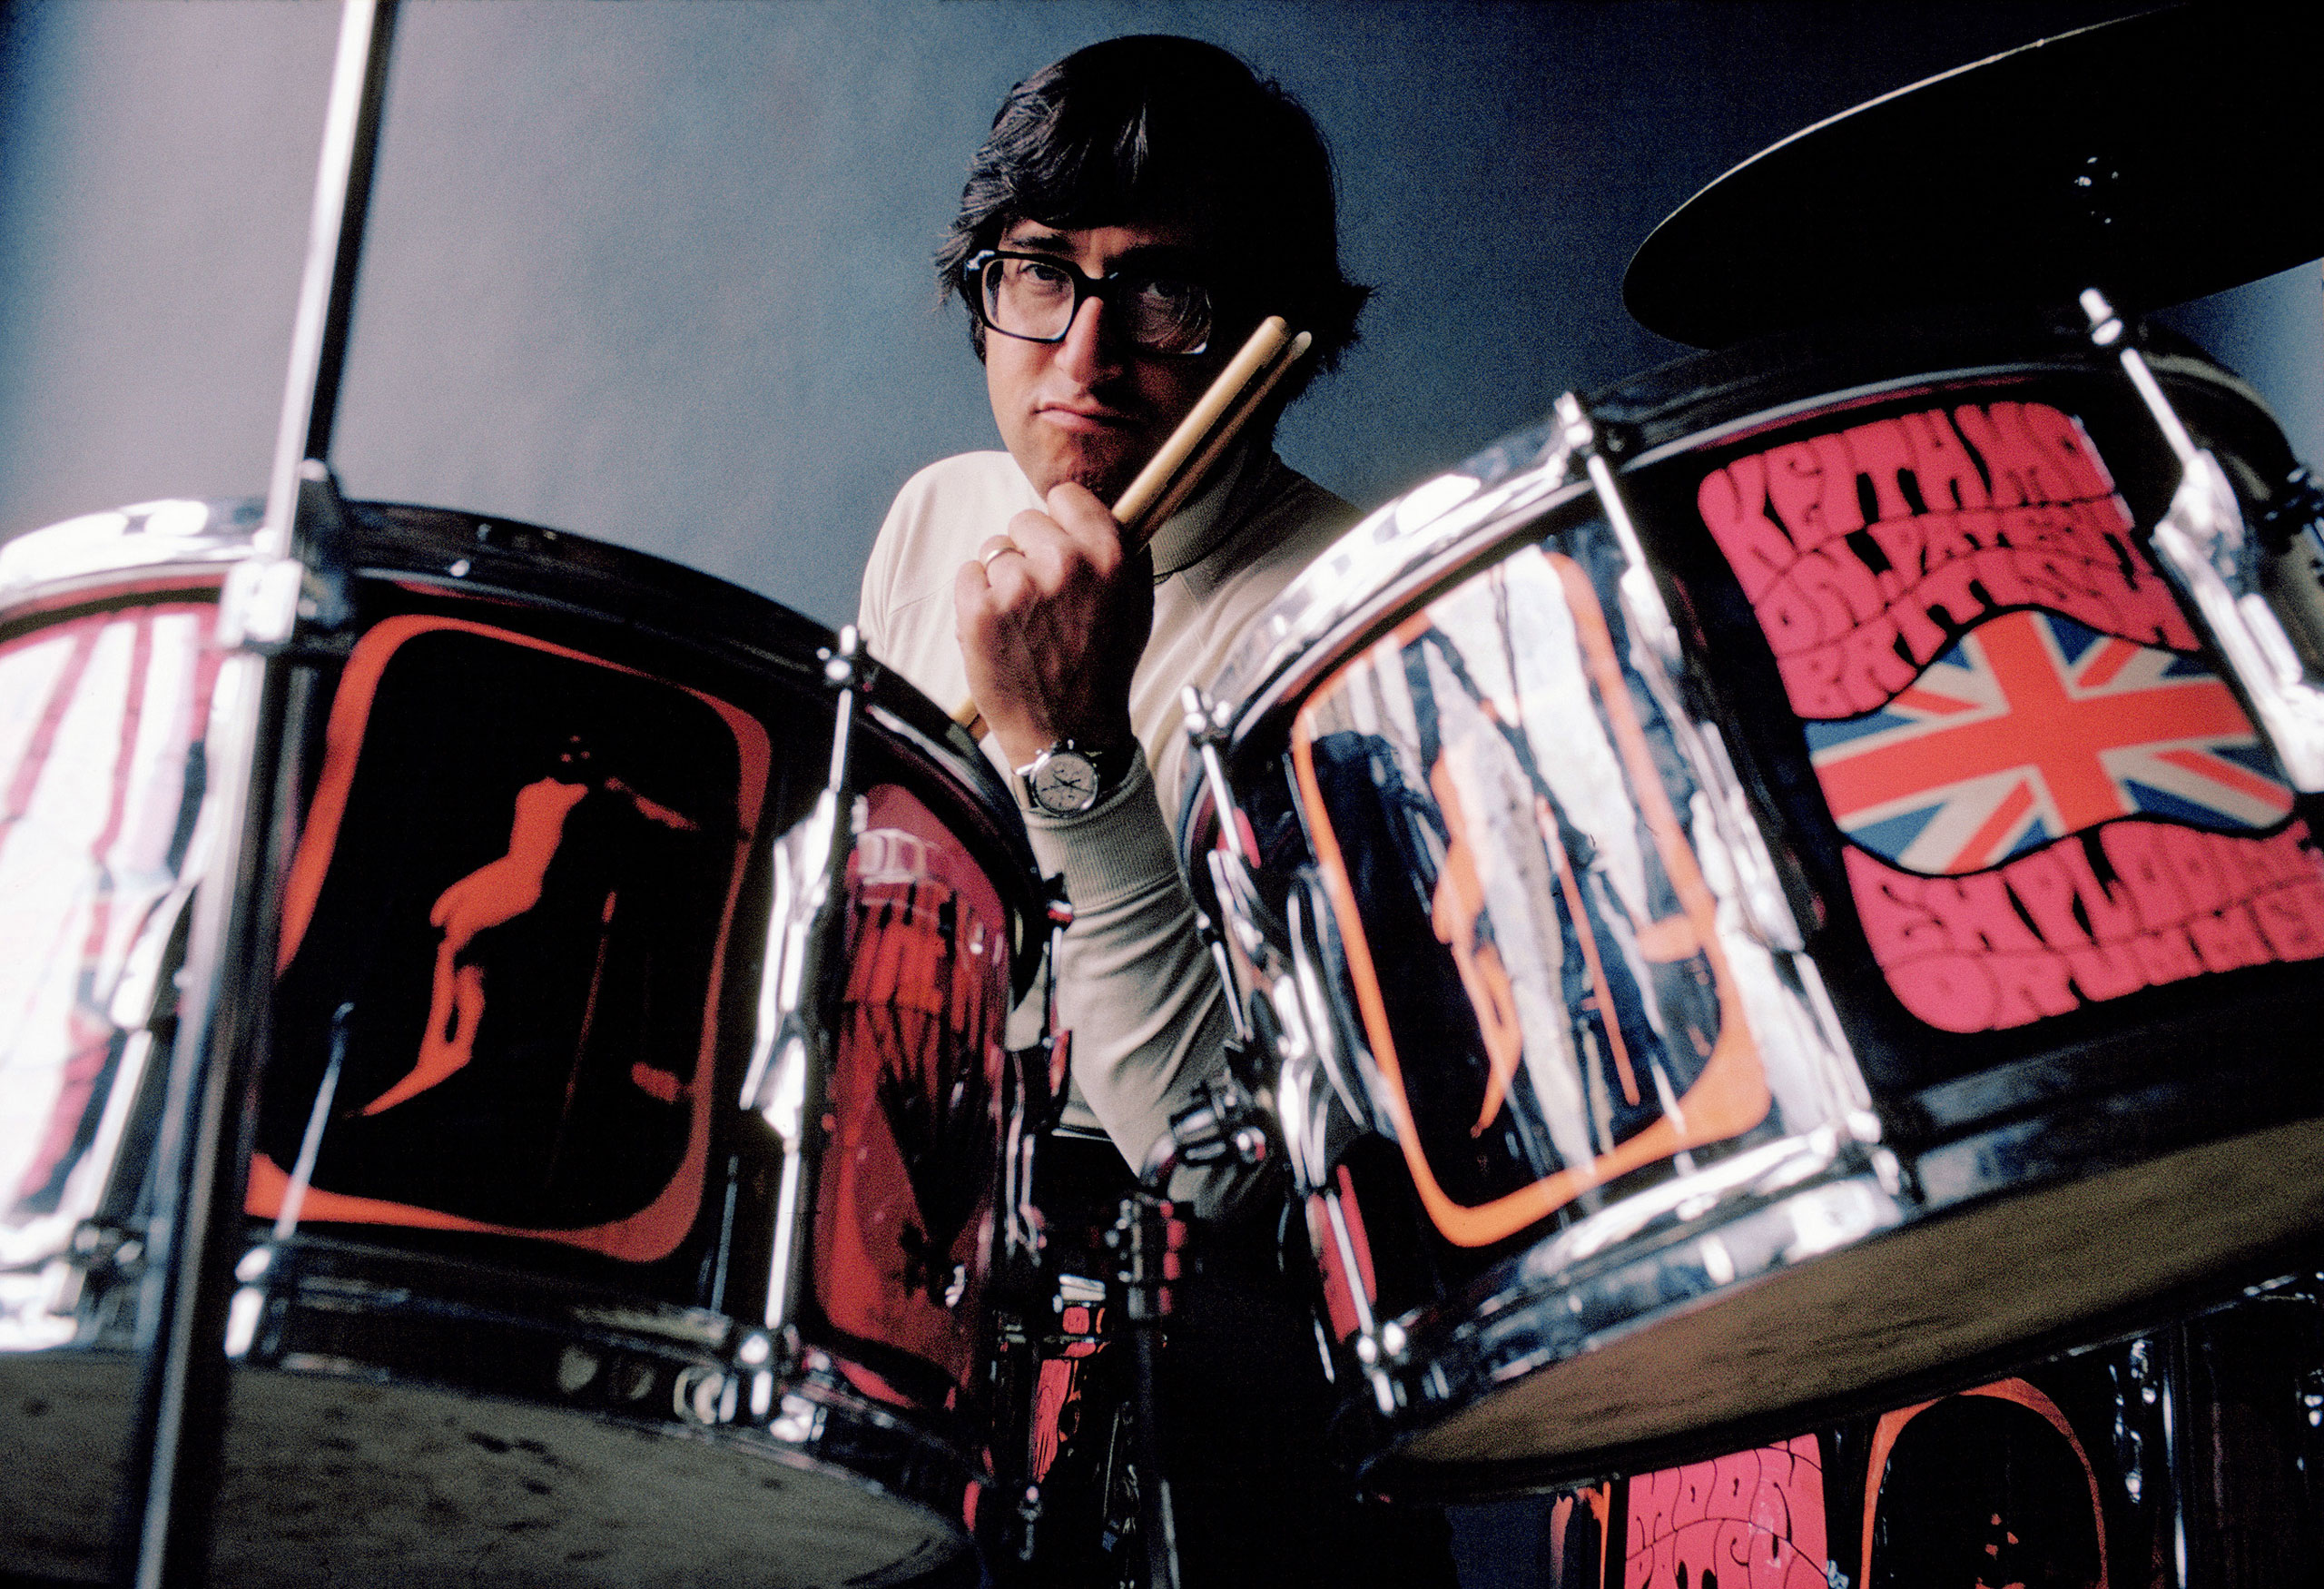 Photographer Art Kane at Keith Moon's drum set, 1968.